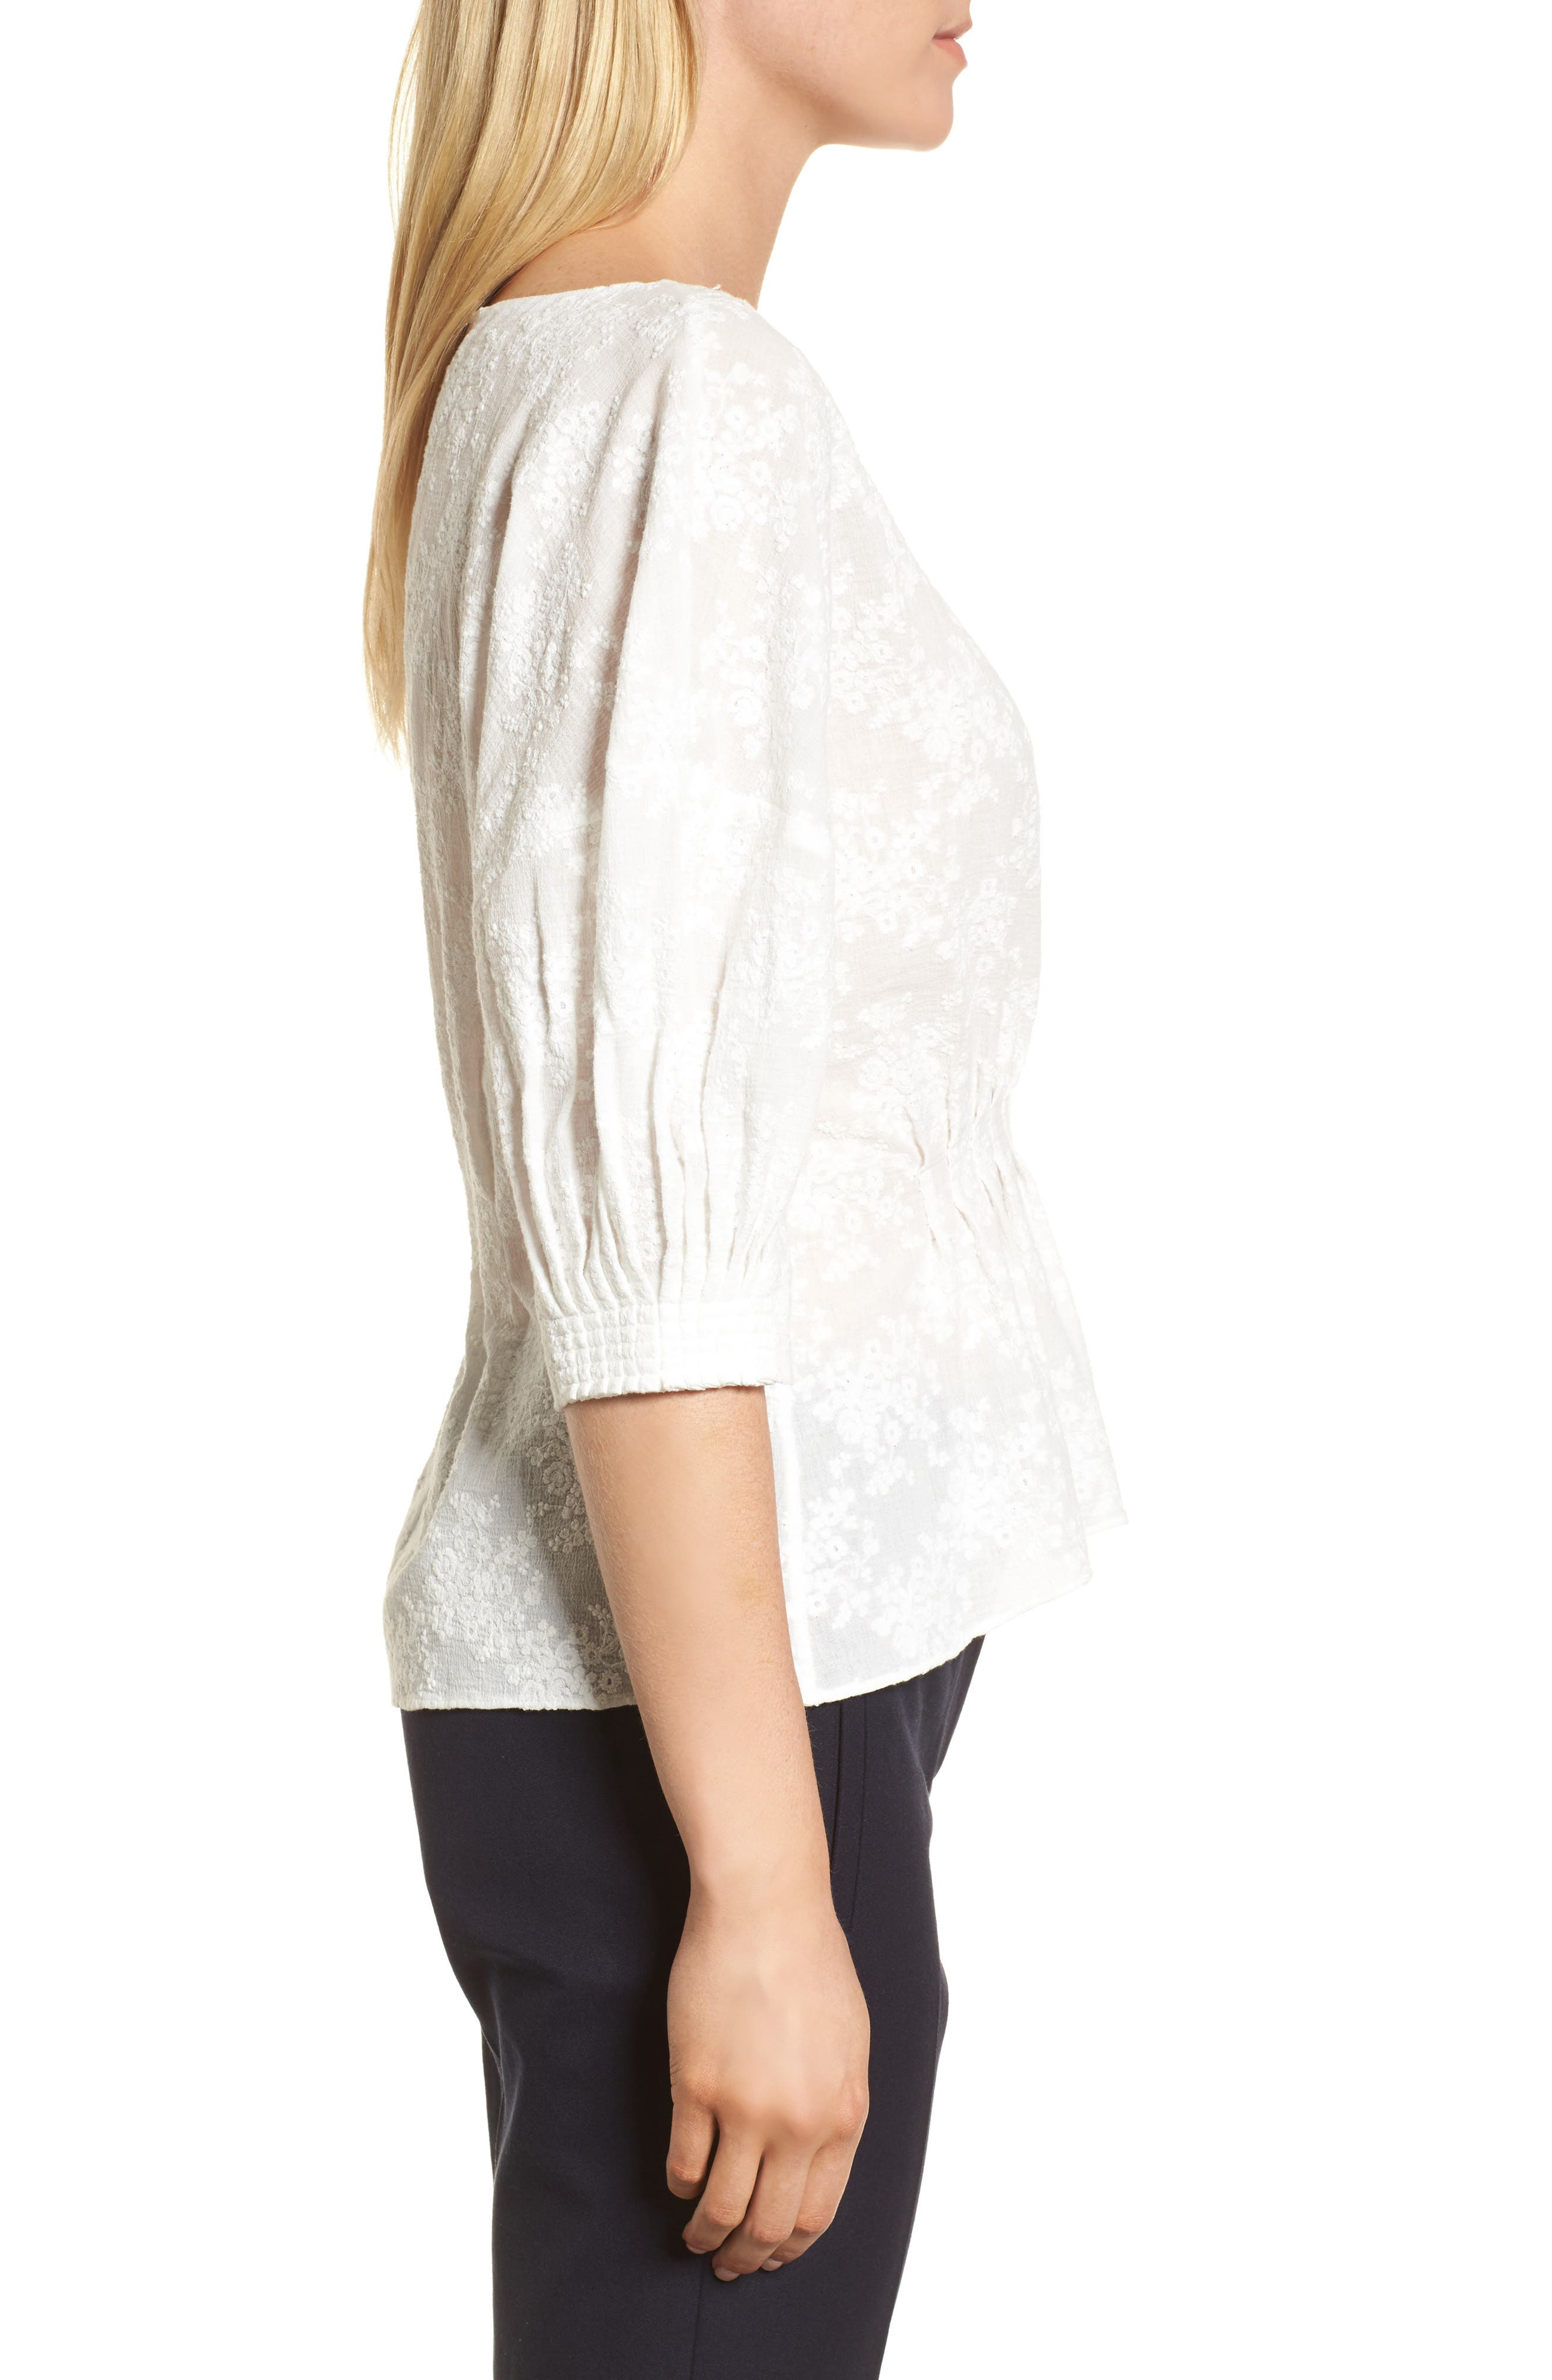 NORDSTROM SIGNATURE, Embroidered Tucked Top, Alternate thumbnail 3, color, 100